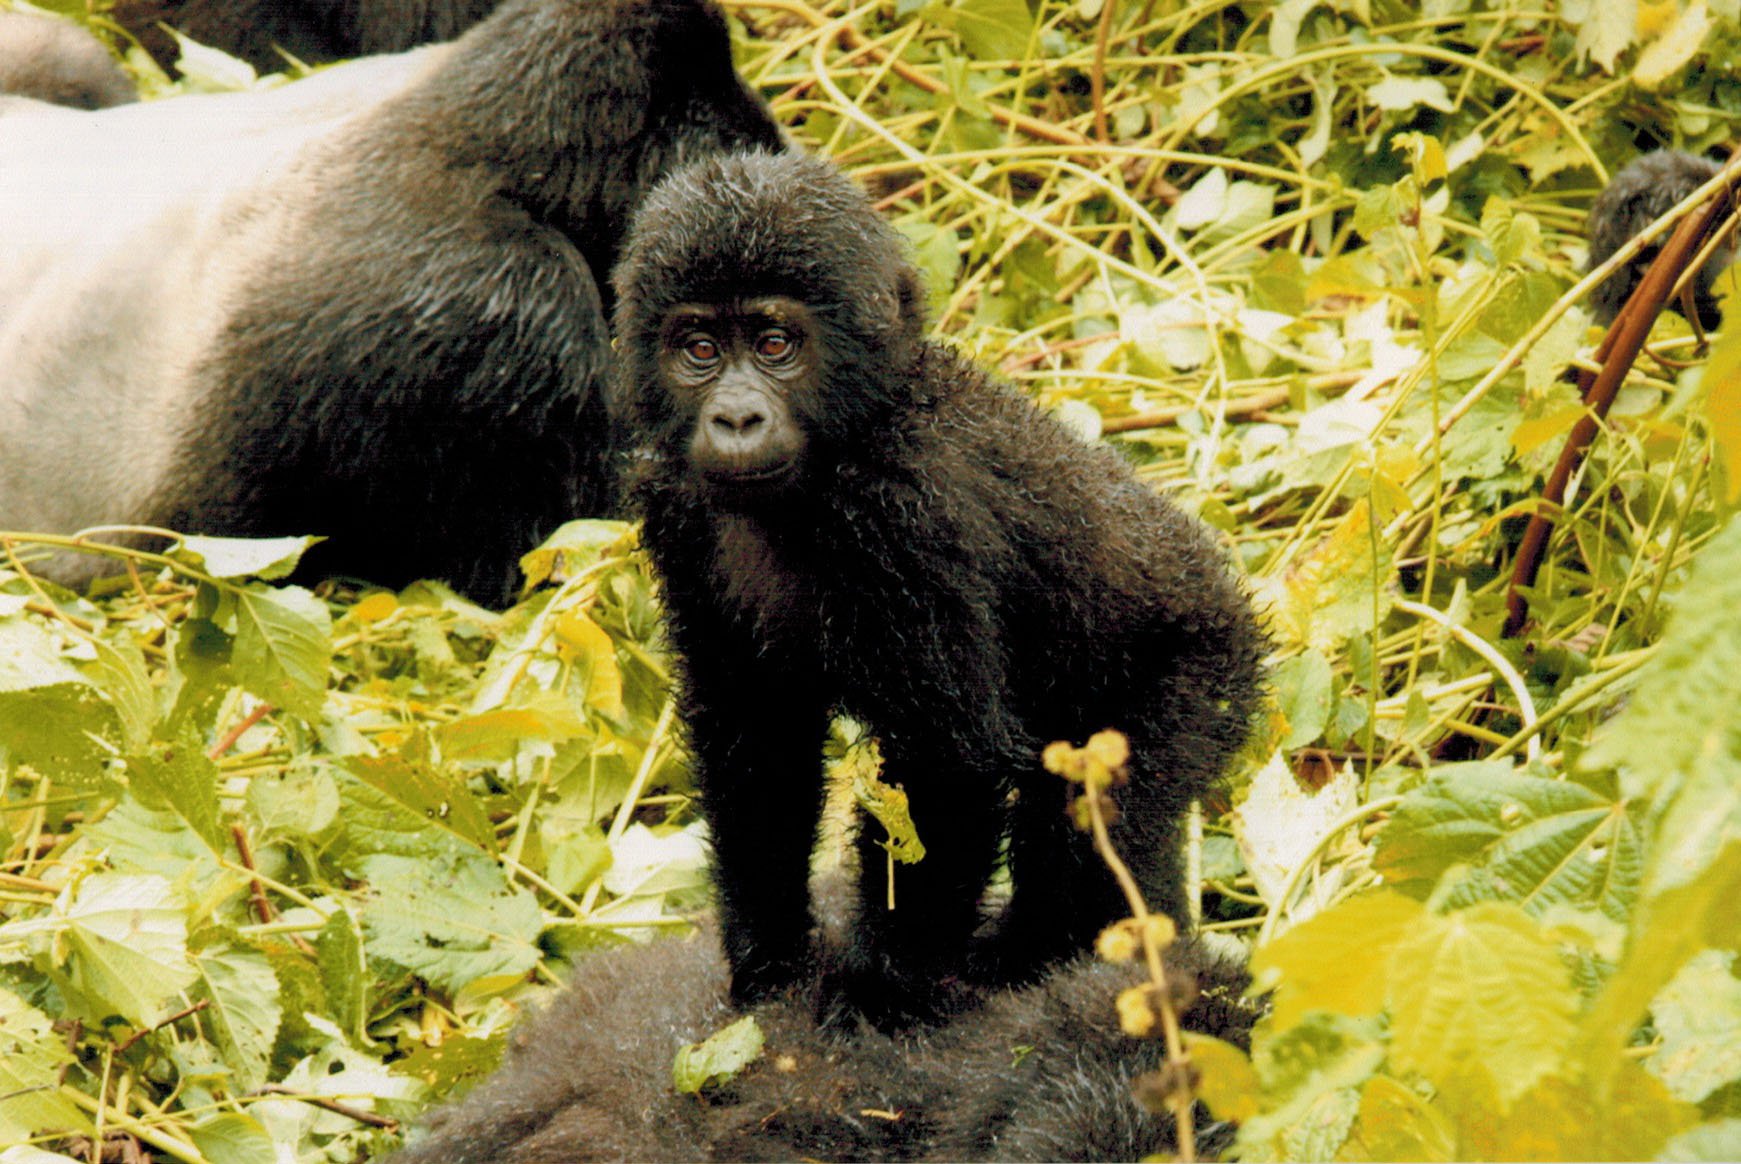 Uganda – Bwindi Impenetrable Forest